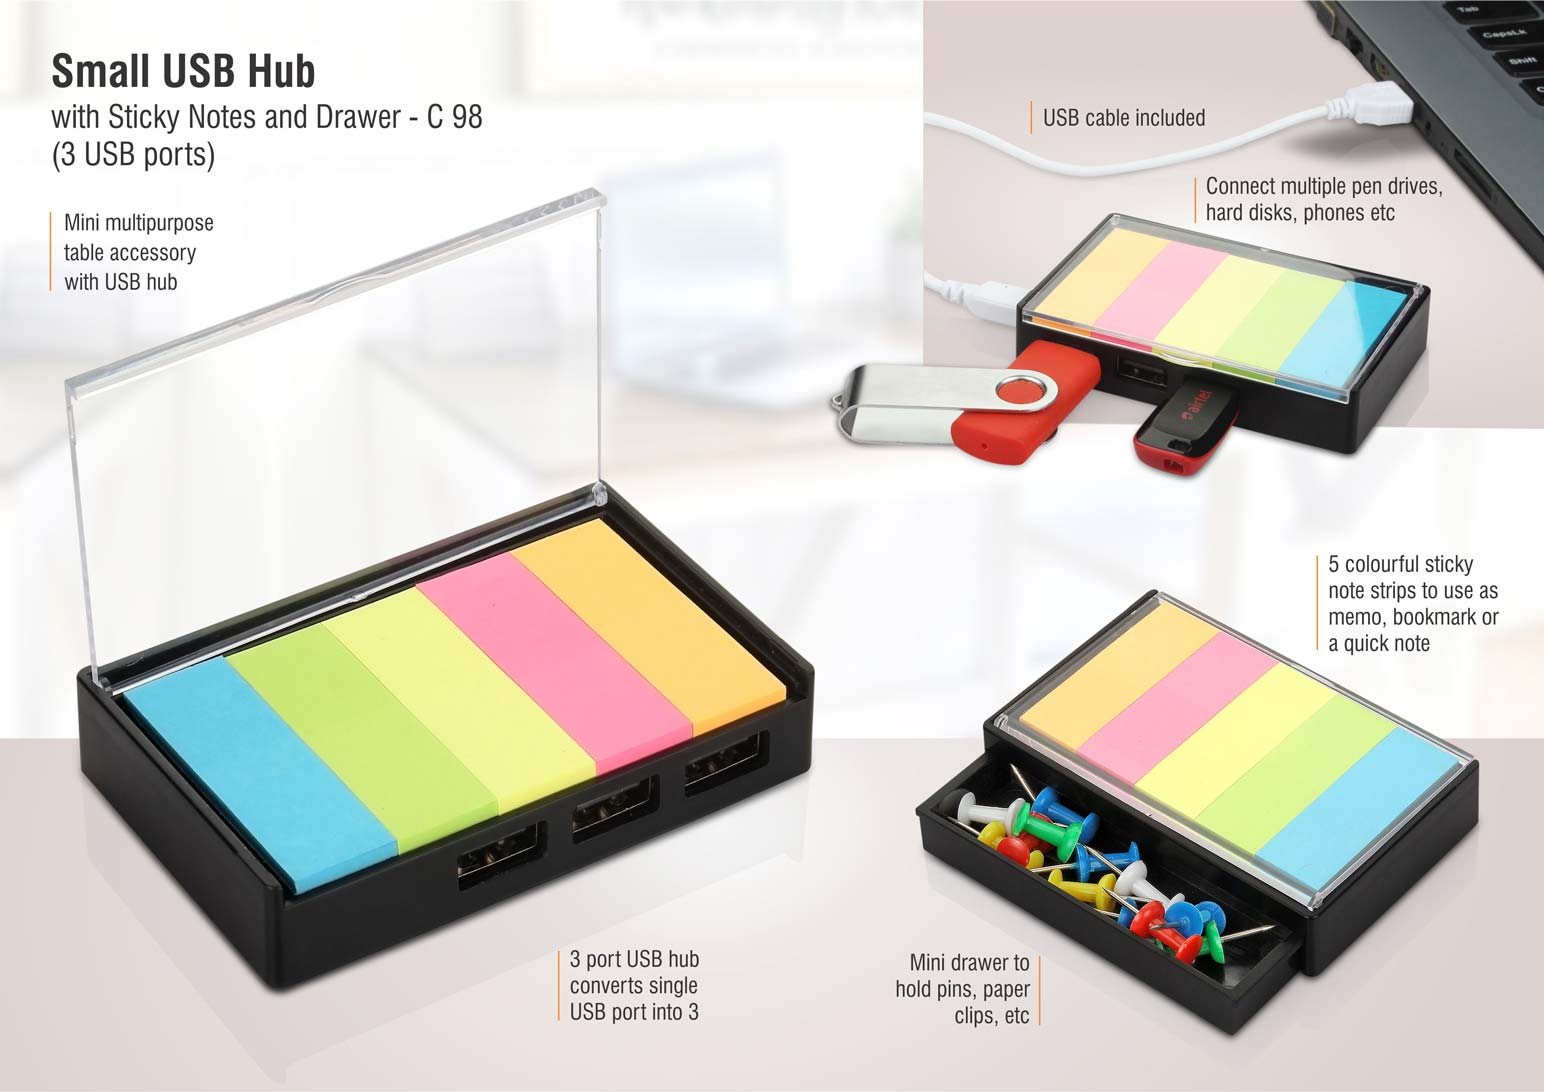 C98 - Small USB hub with sticky notes and drawer | 3 USB ports